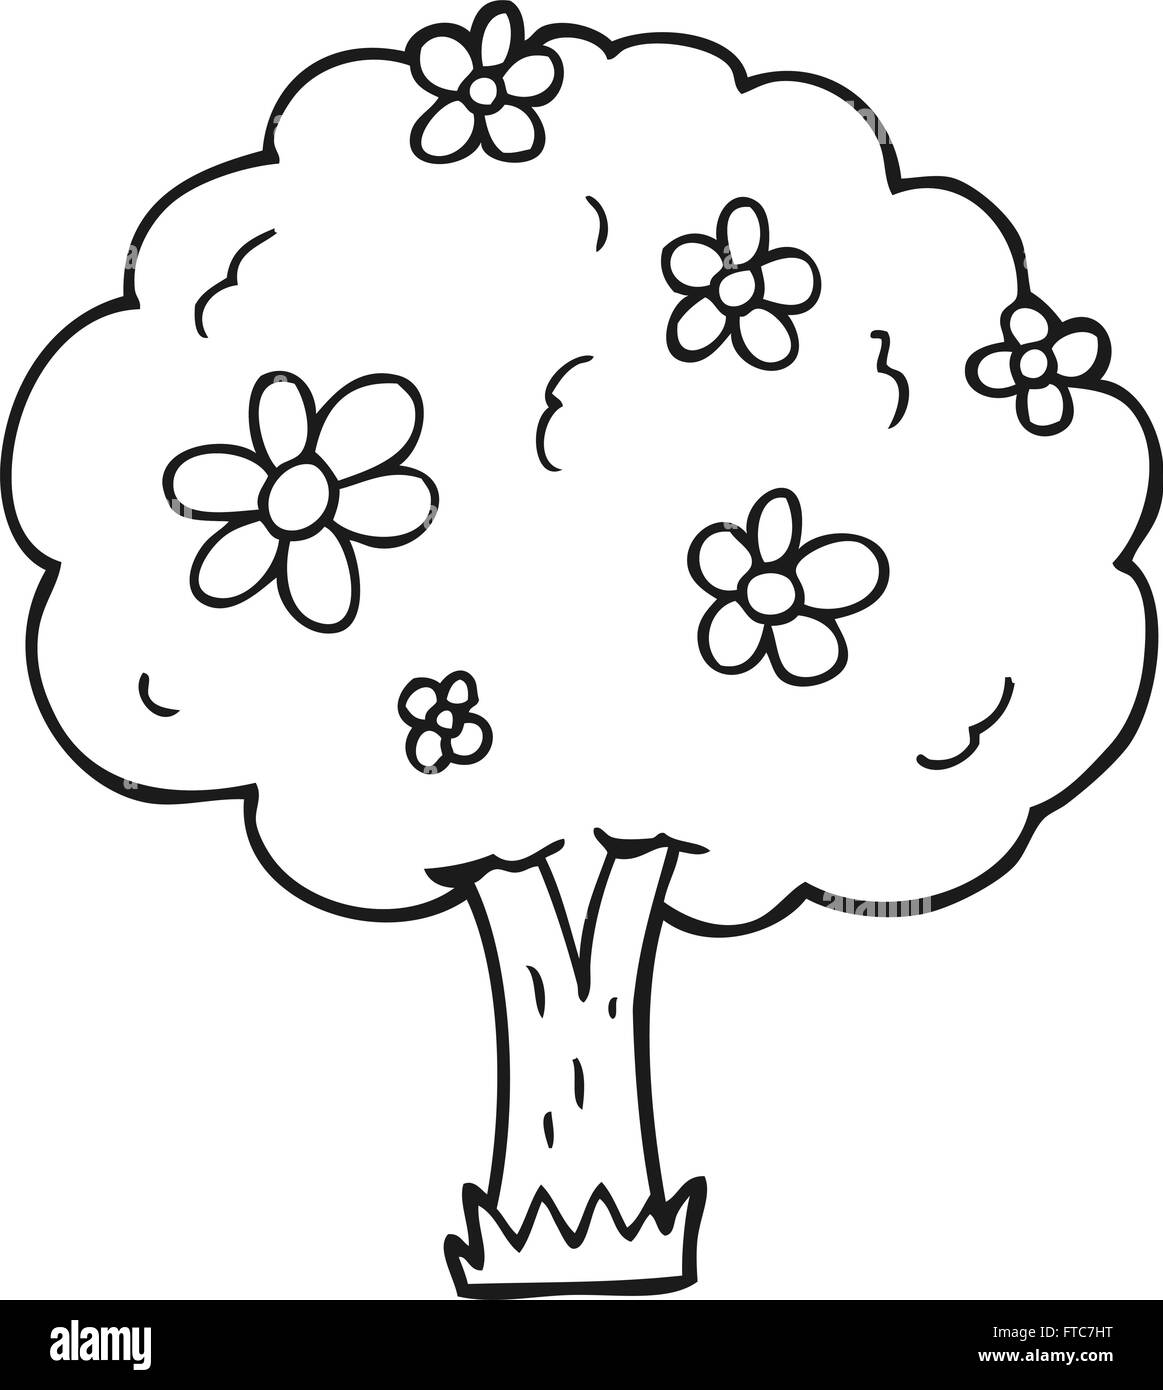 Freehand Drawn Black And White Cartoon Tree With Flowers Stock Vector Image Art Alamy Wow very nice shot, i like it how its got the mountains in the background, and i really like the look of the dead tree. https www alamy com stock photo freehand drawn black and white cartoon tree with flowers 101072996 html